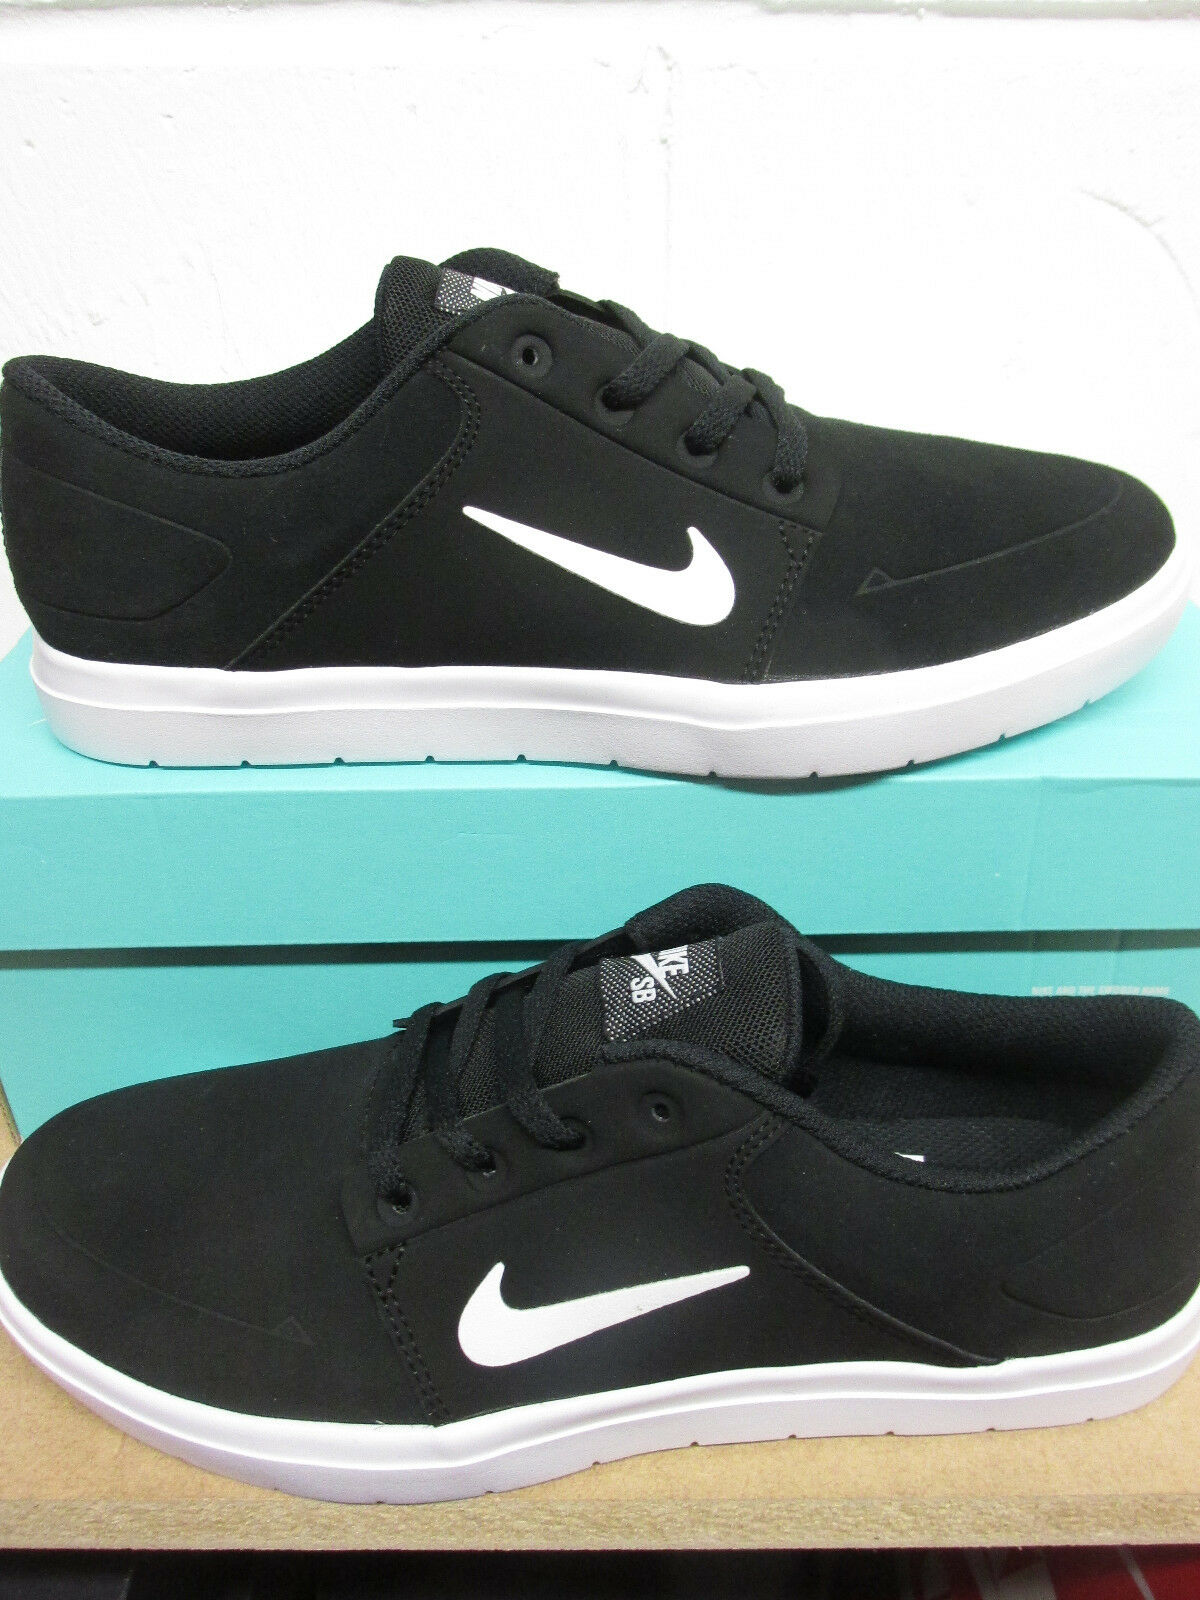 Nike Trainers SB Portmore Vapor Hommes Trainers Nike 855973 010 Baskets Chaussures 5eba57